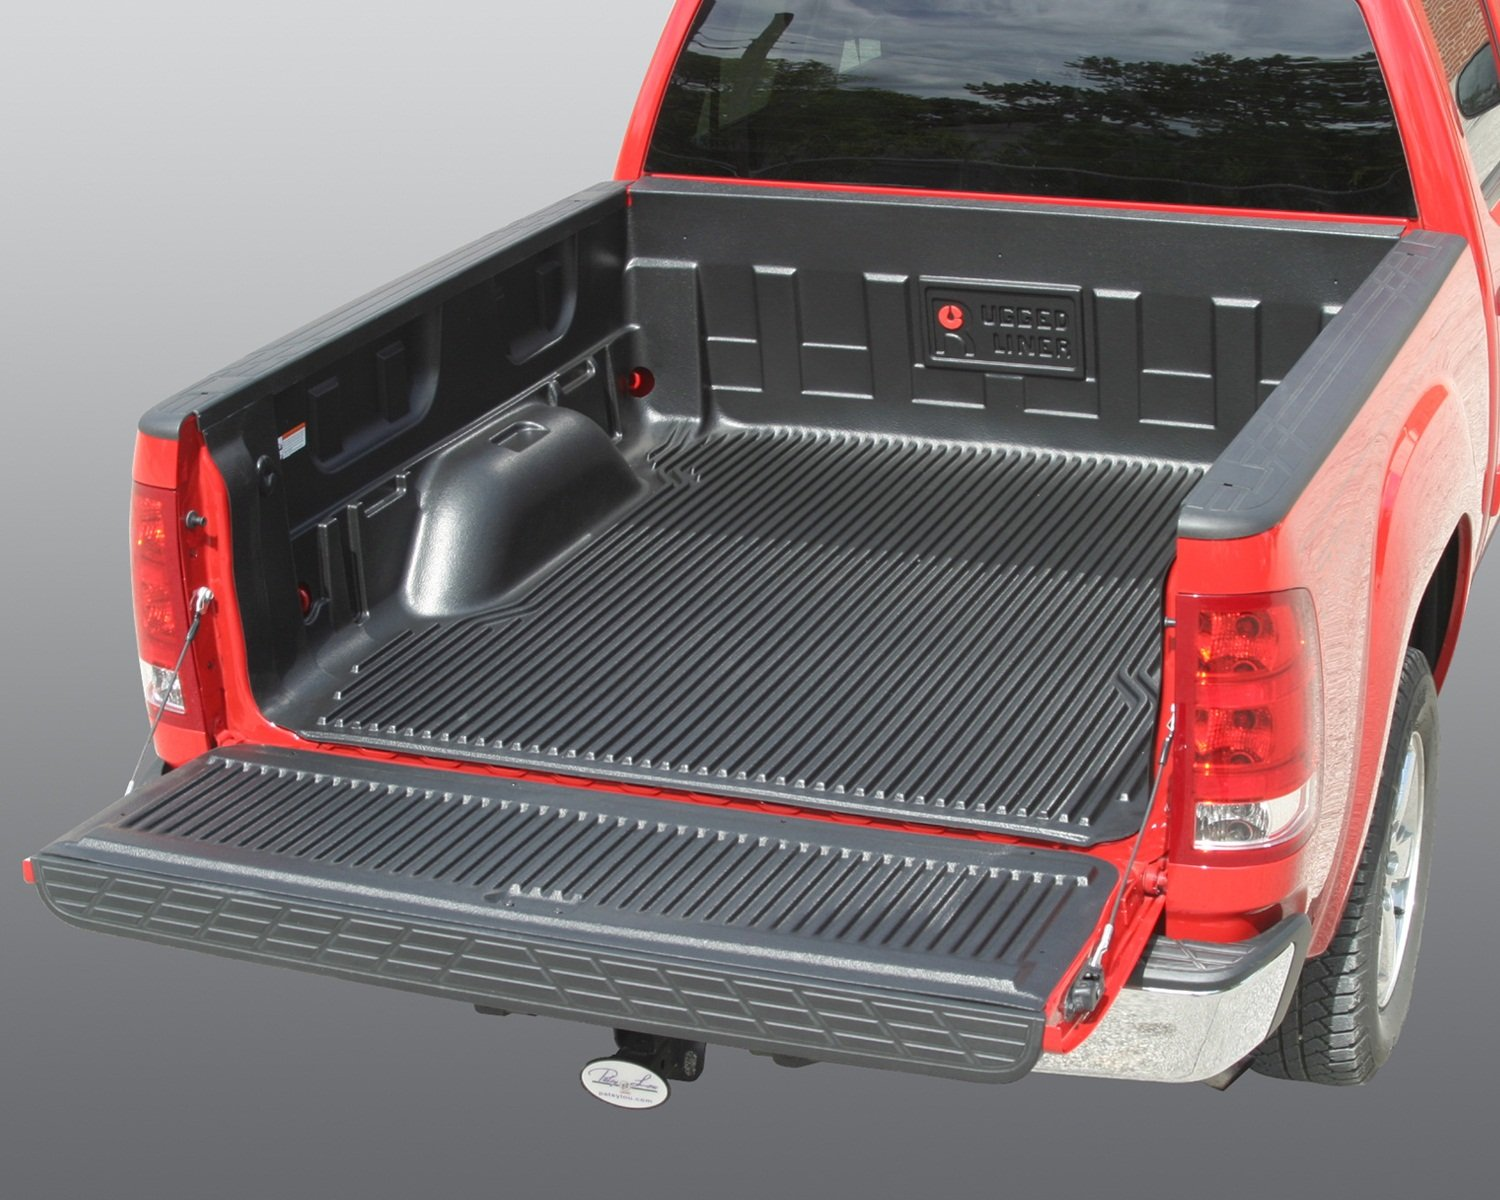 Lgdy Kl Sl on 1997 Dodge Ram 1500 Tailgate